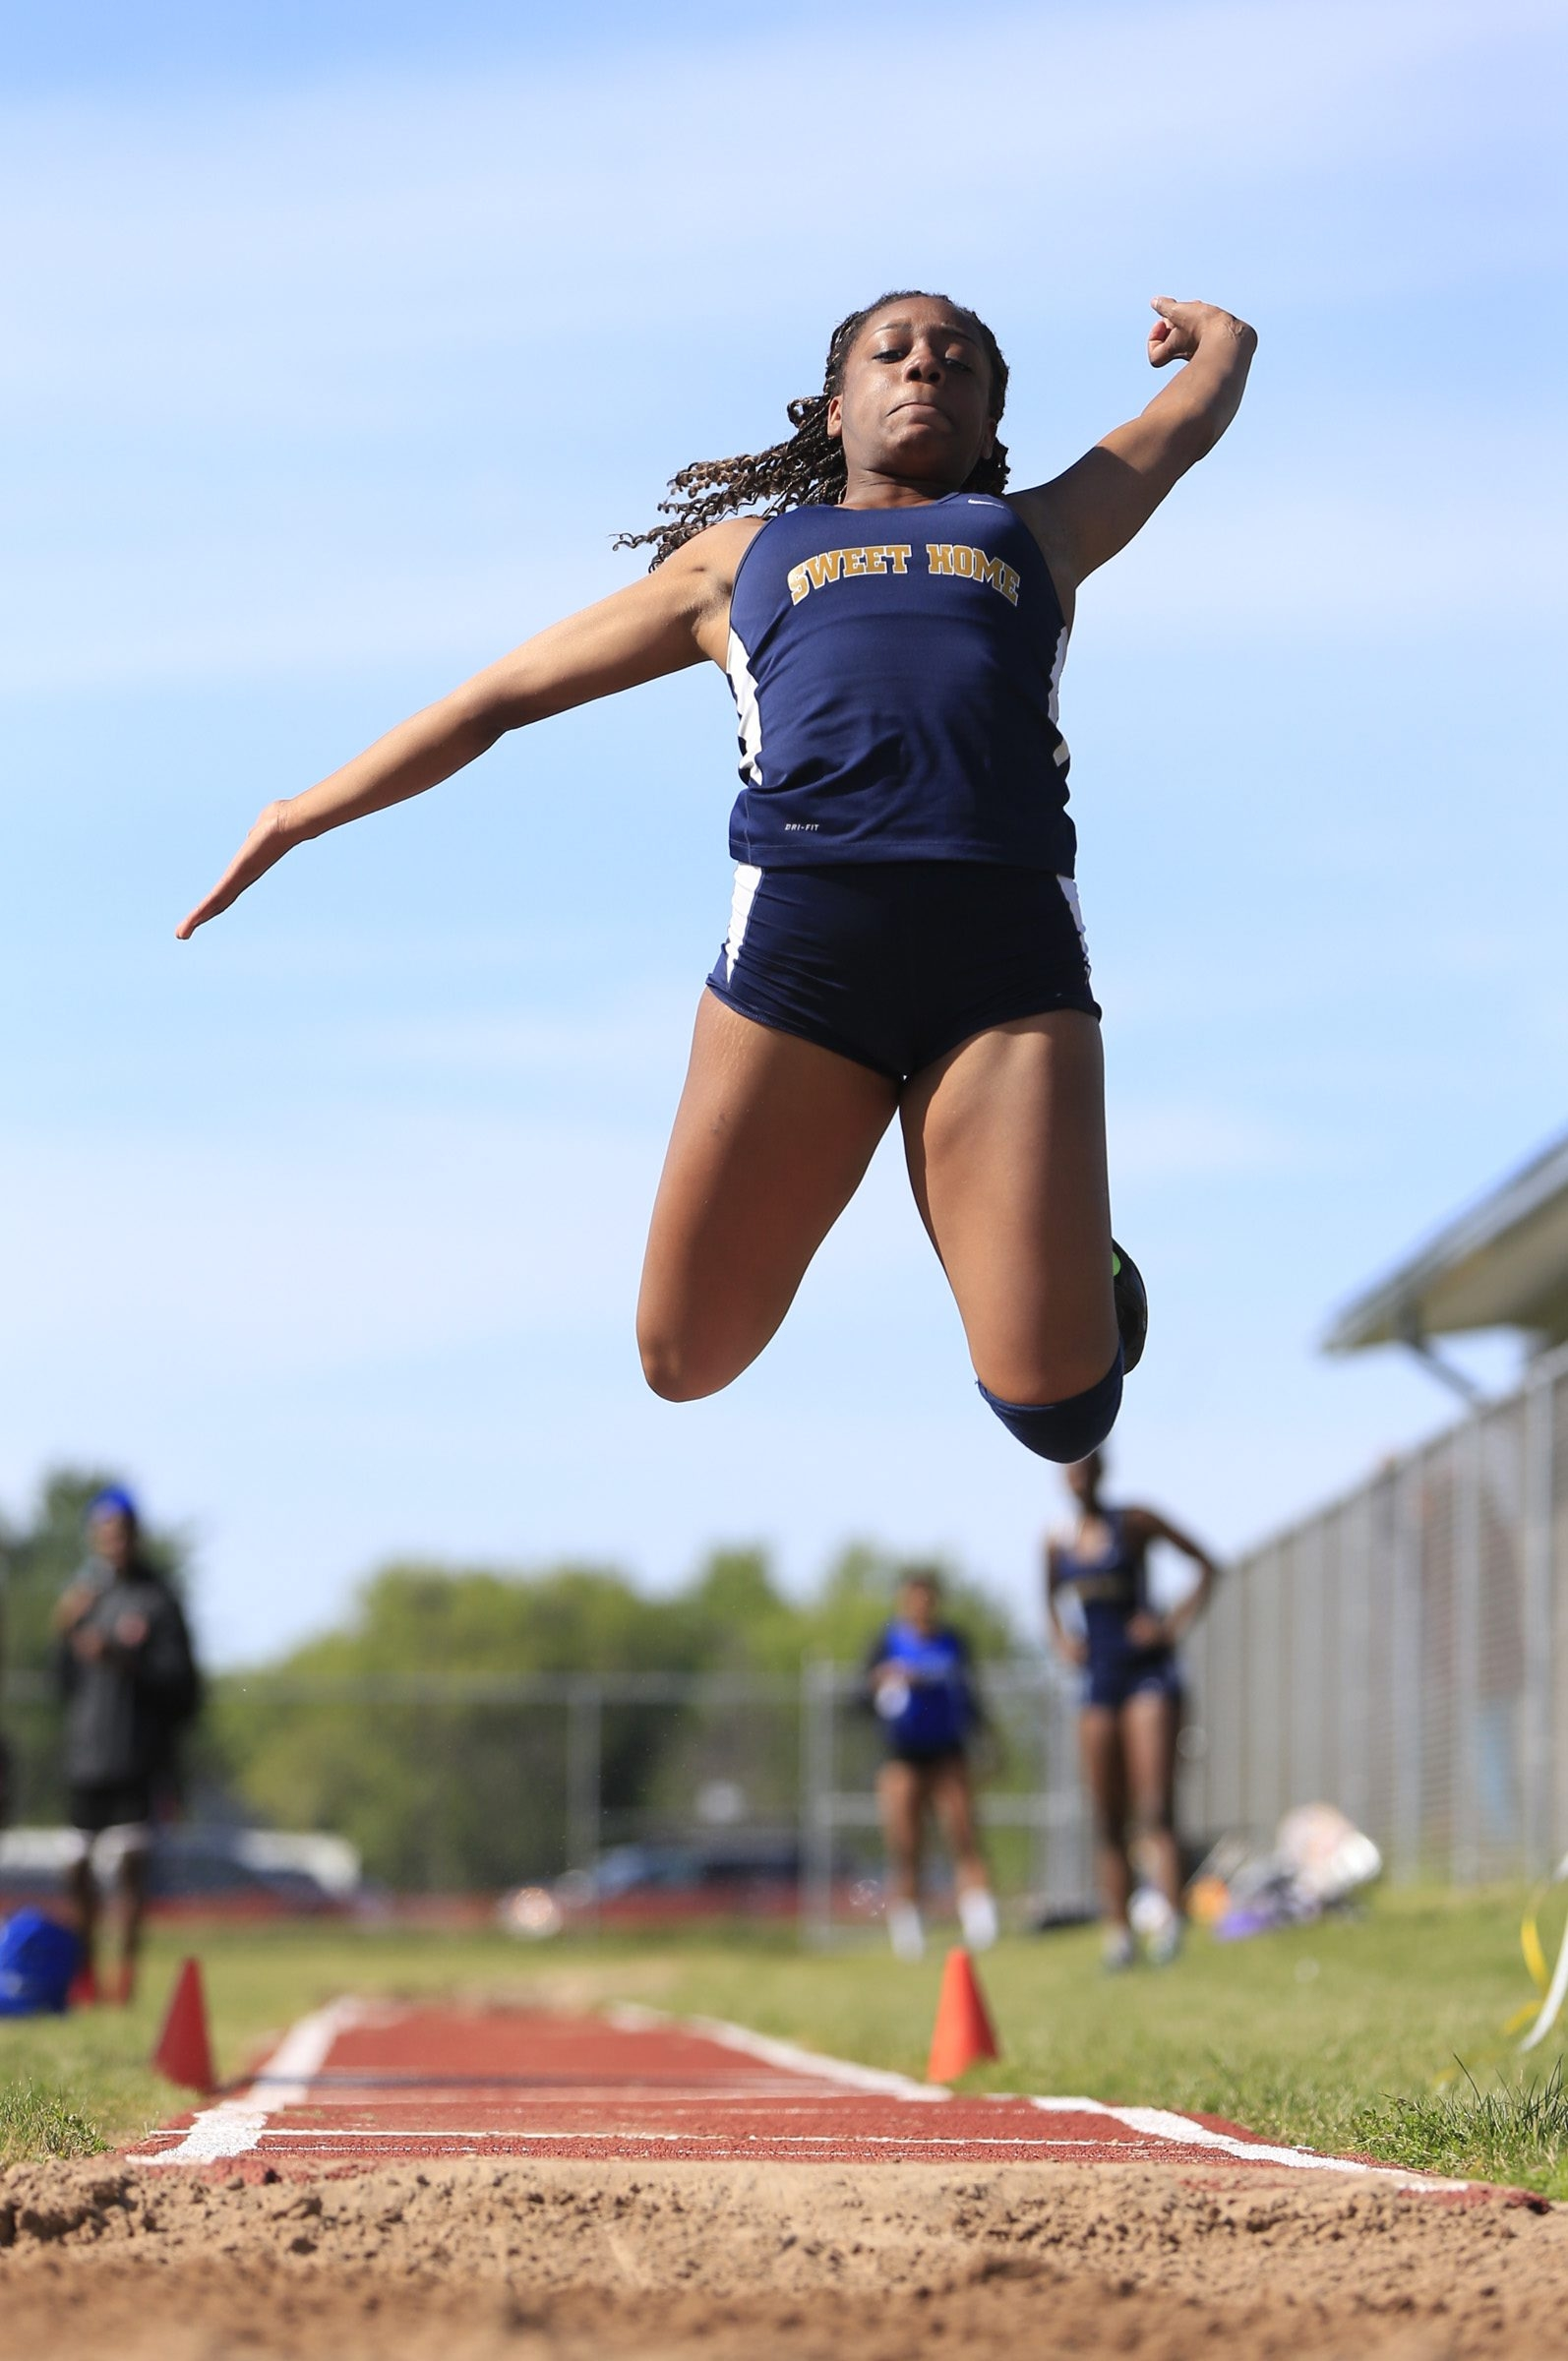 Sadira Brown of Sweet Home will be taking part in the triple jump event at the state championships.